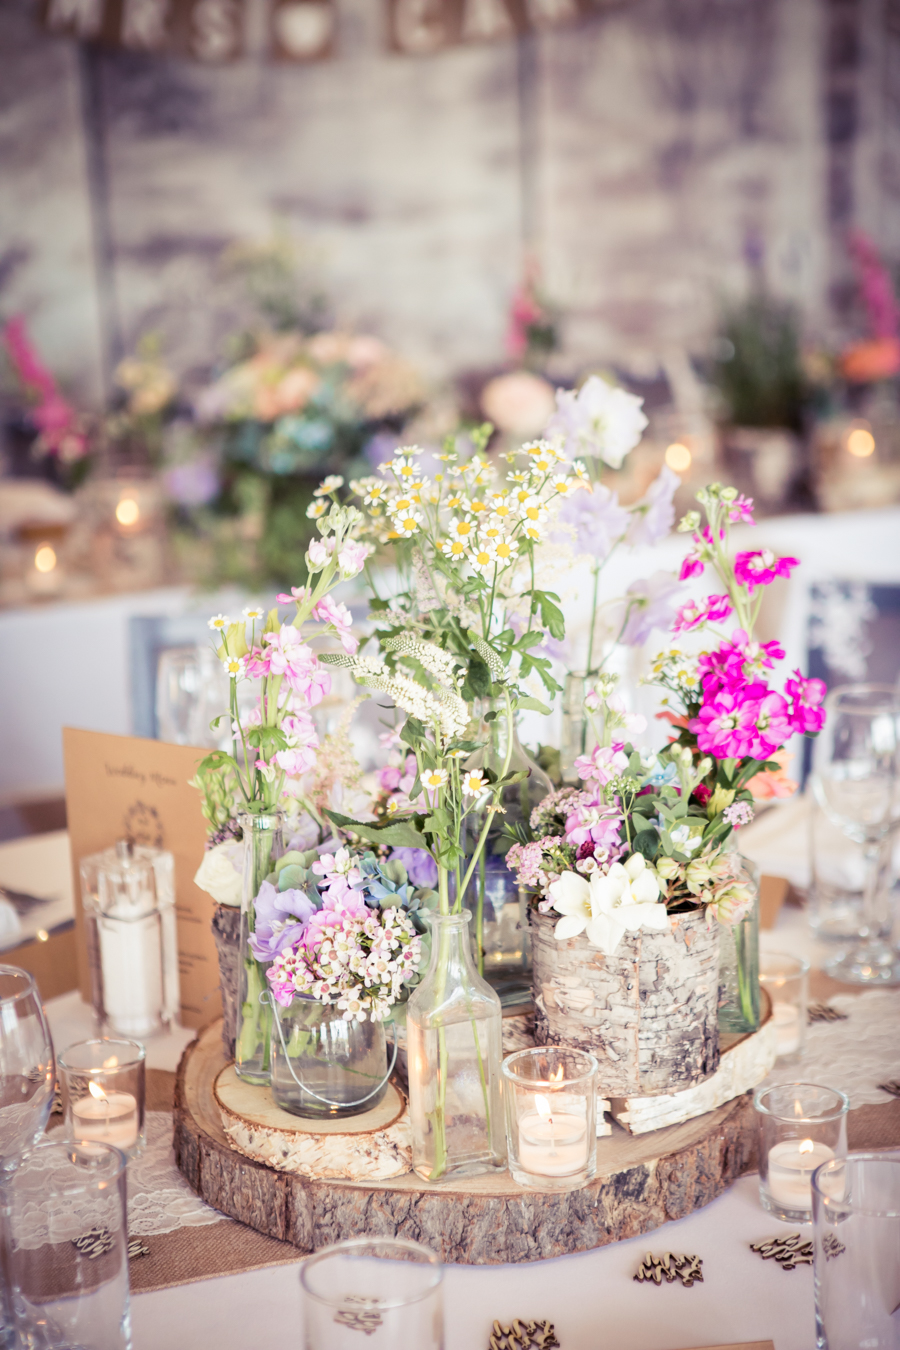 Gorgeous mixed summer florals for a romantic countryside wedding near Huddersfield, with Photography by Kathryn (31)